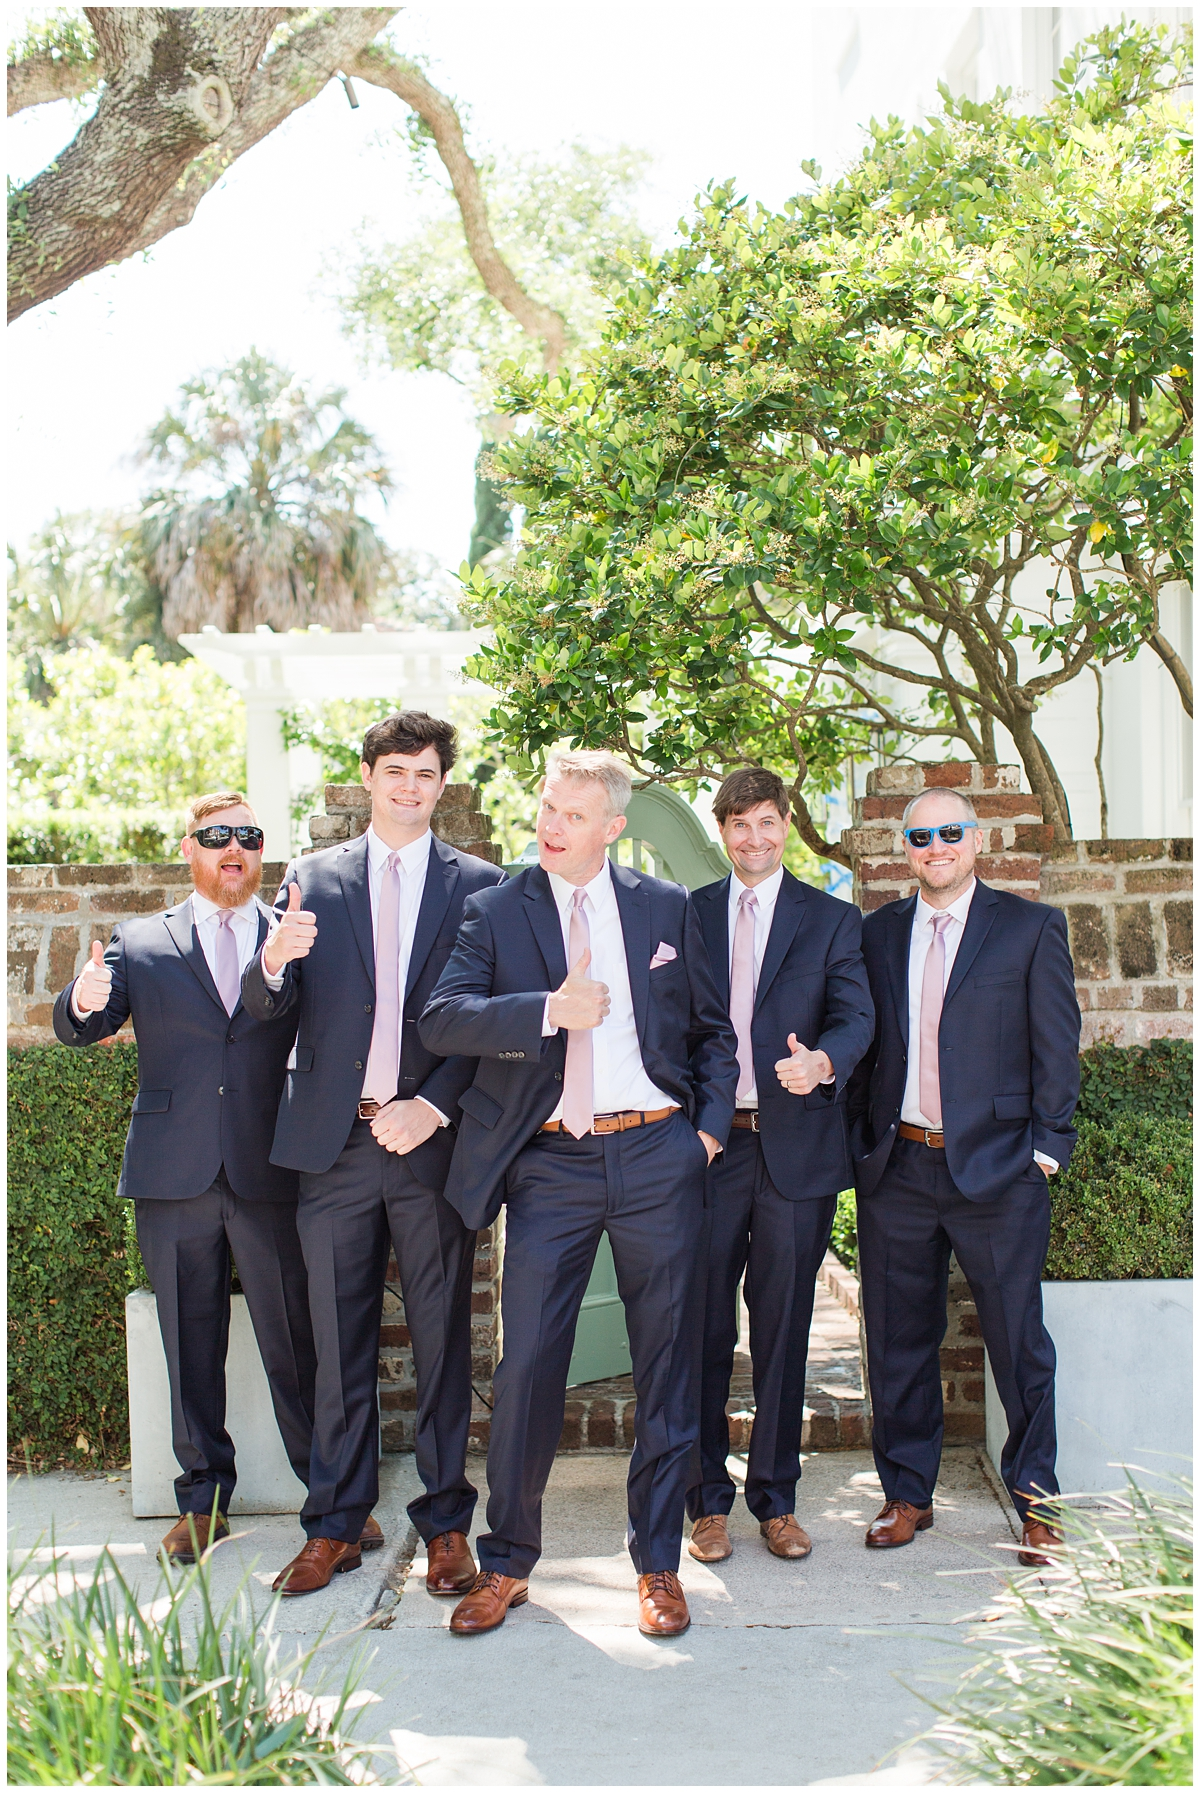 groom poses with funny pose for groomsmen